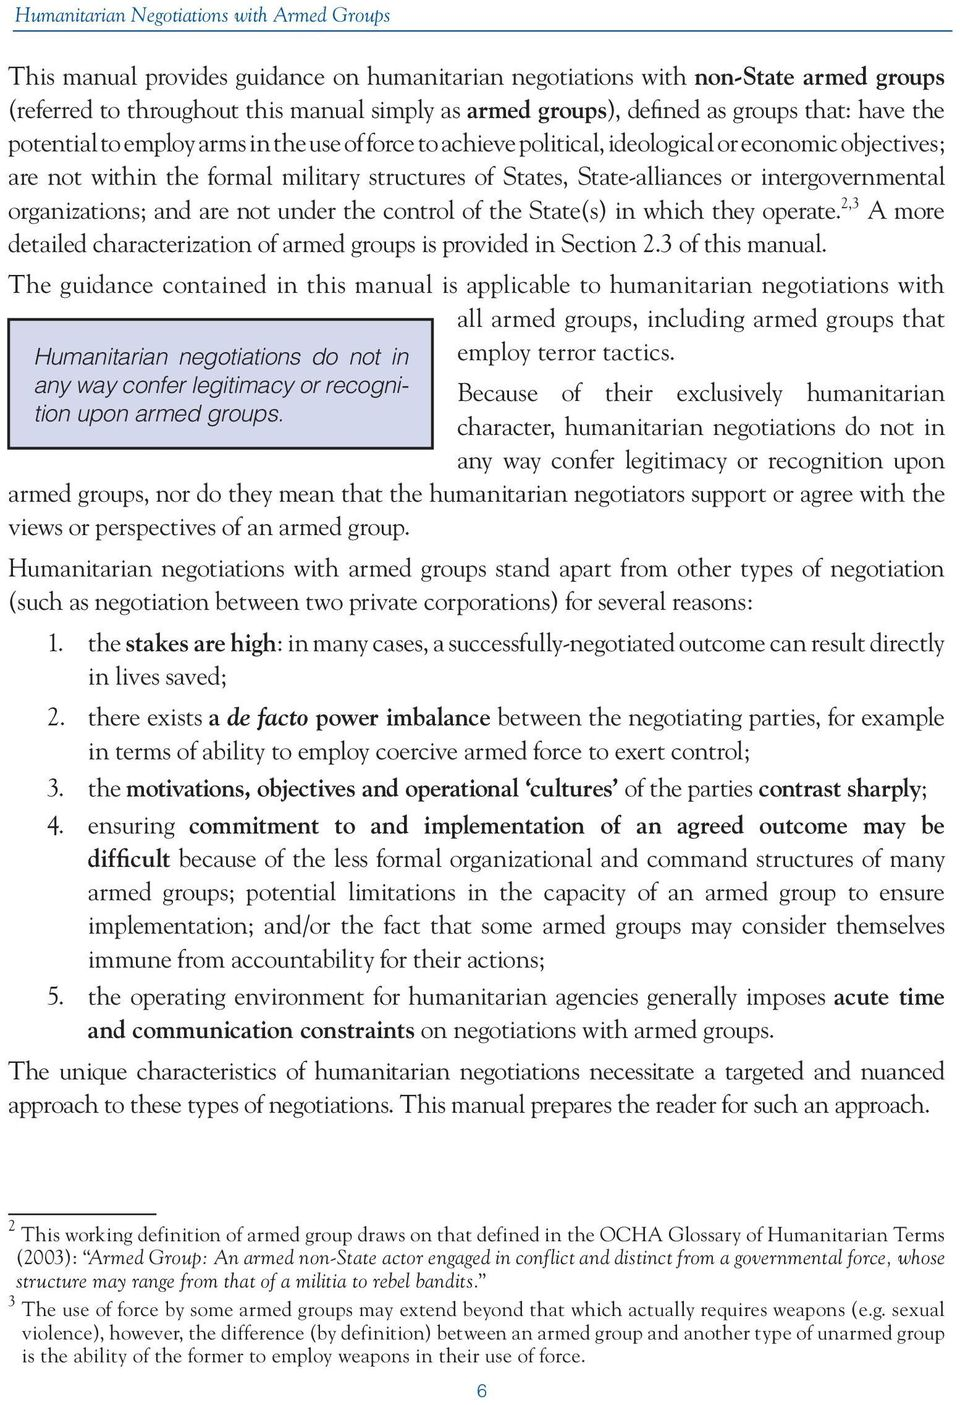 and are not under the control of the State(s) in which they operate. 2,3 A more detailed characterization of armed groups is provided in Section 2.3 of this manual.